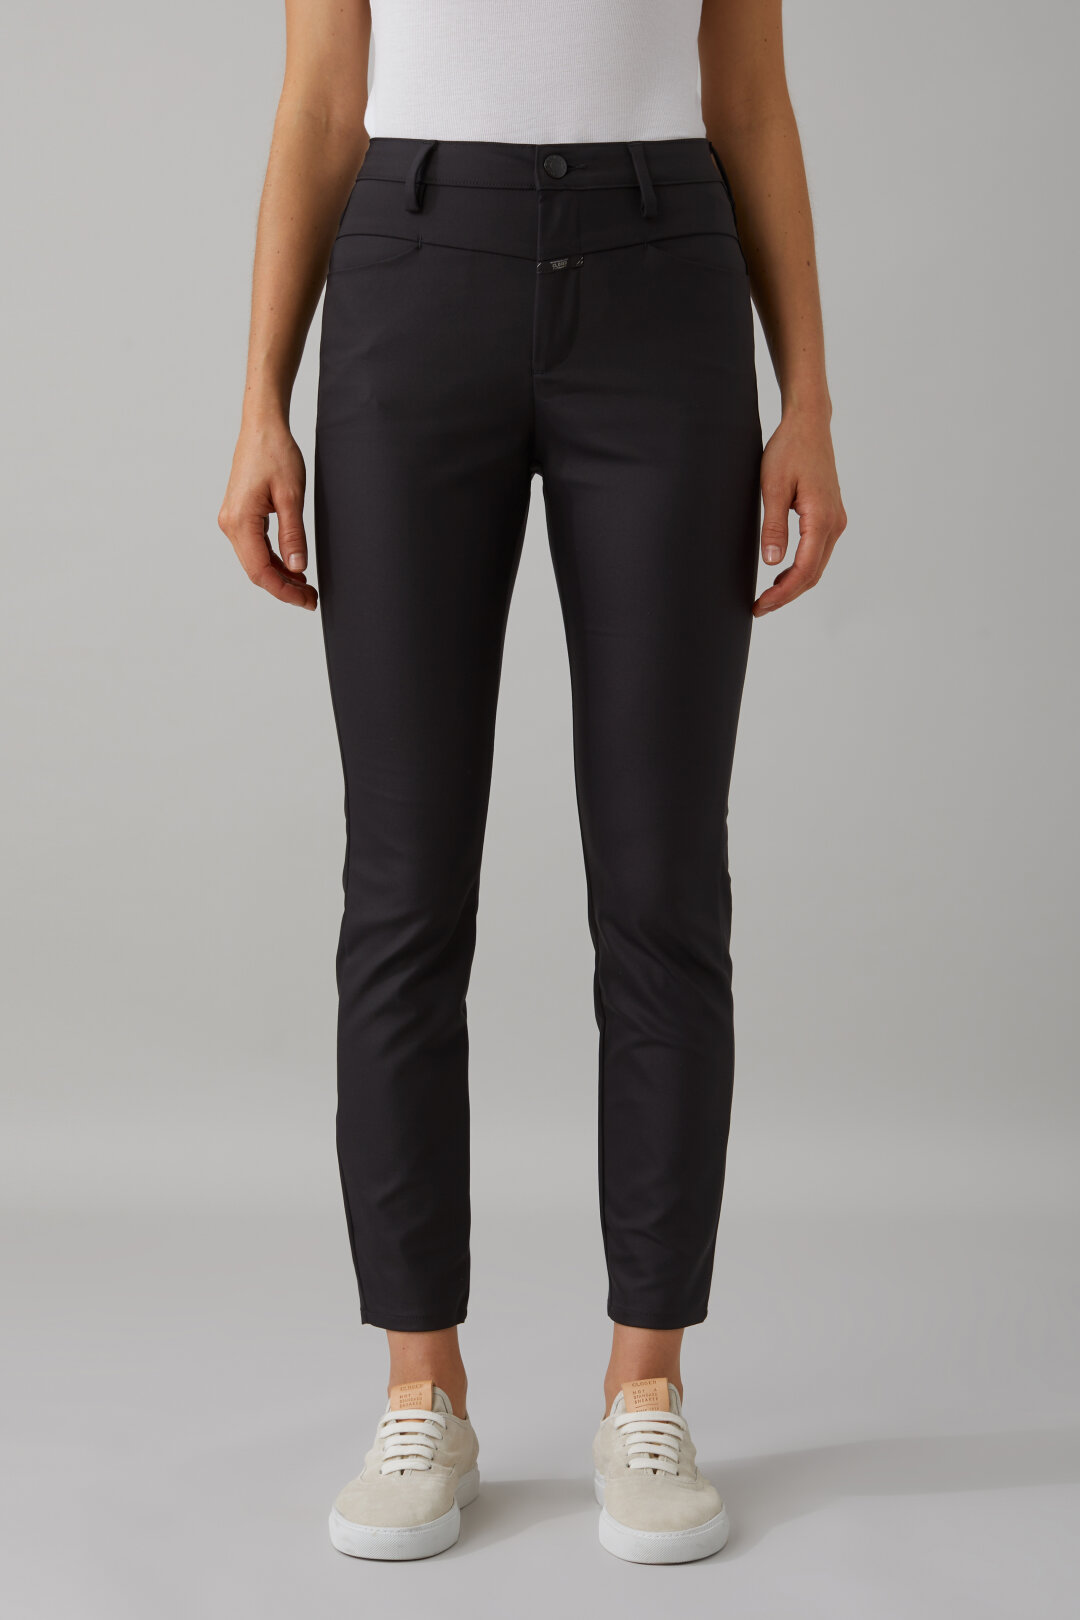 Pantalon Skinny Pusher